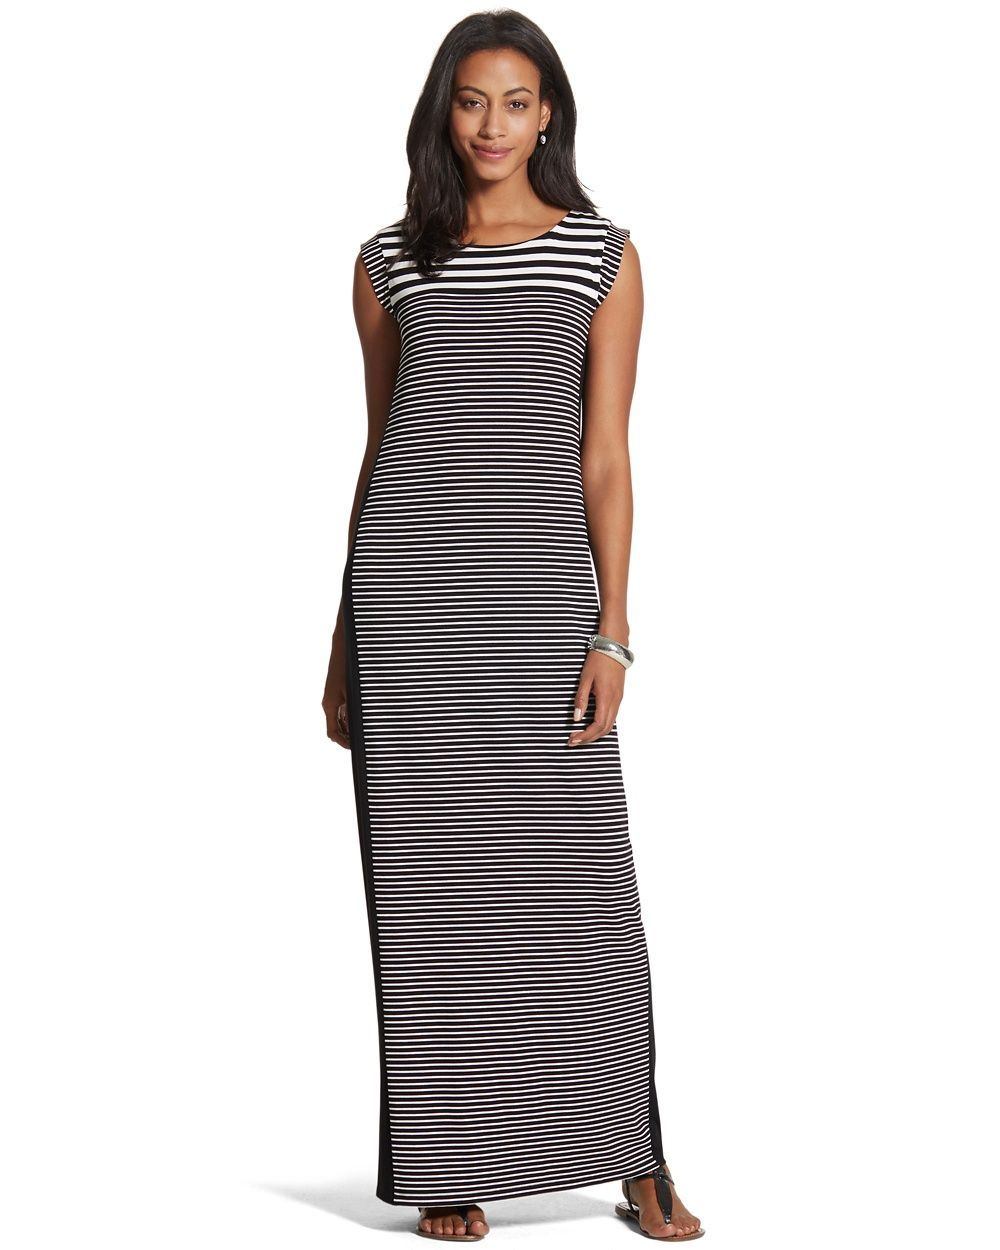 Chico Cocktail Dresses On Sale